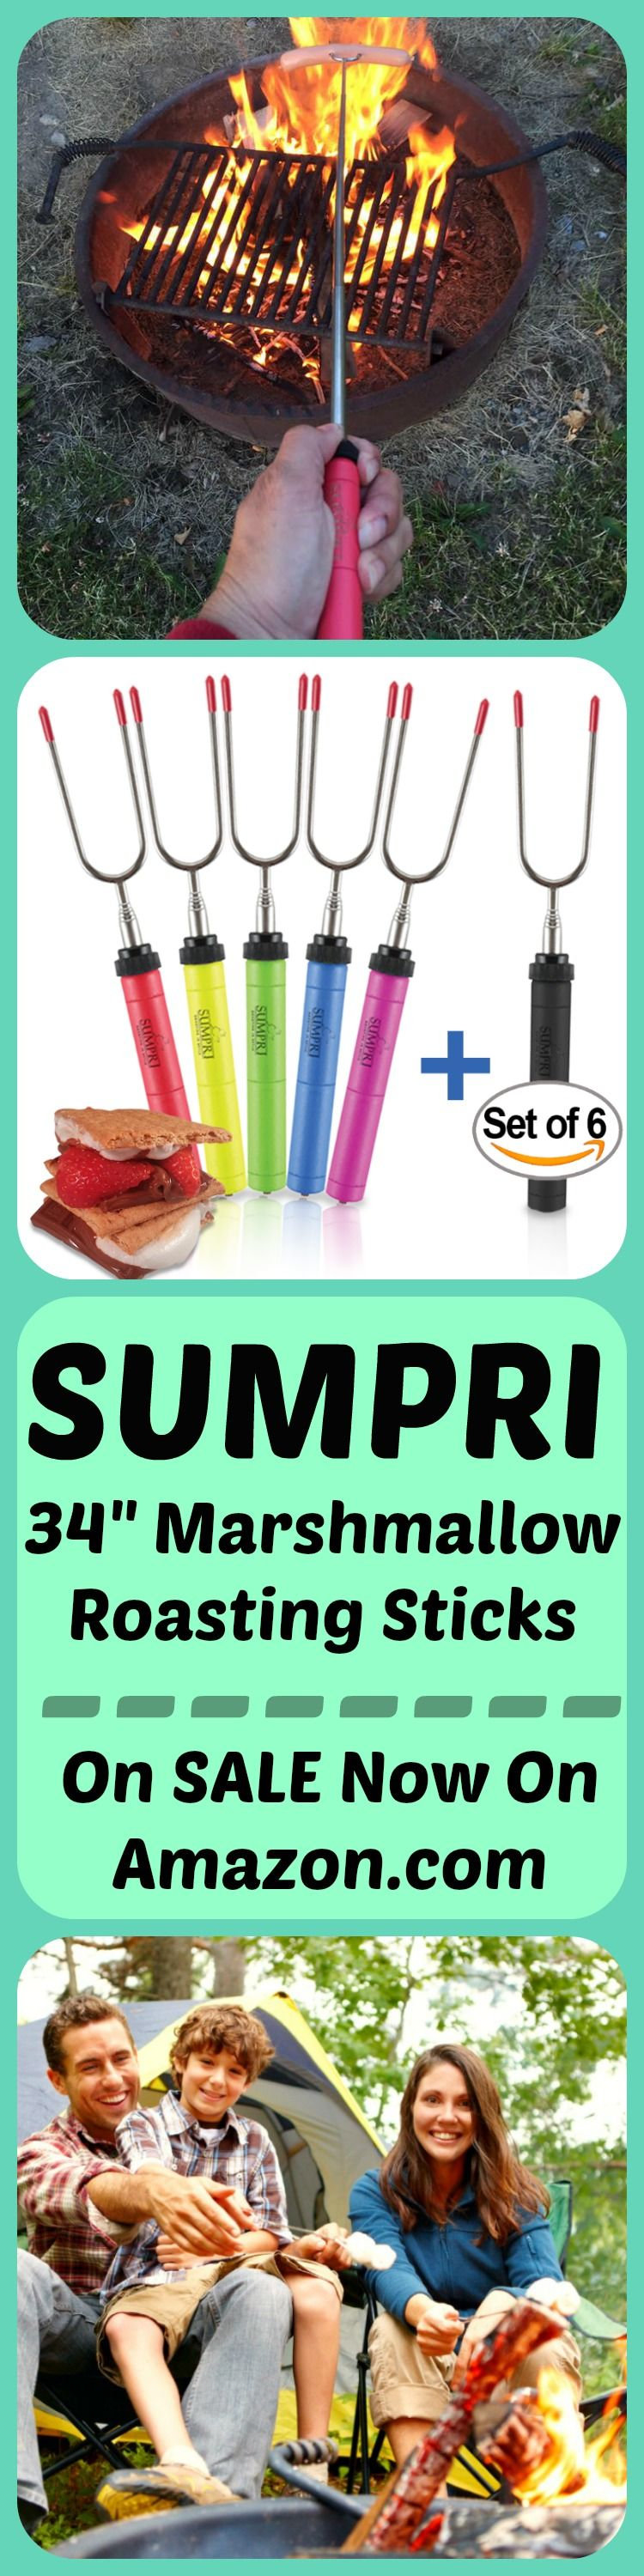 SUMPRI - Making S'mores with Marshmallow Roasting Sticks #marshmallowsticks